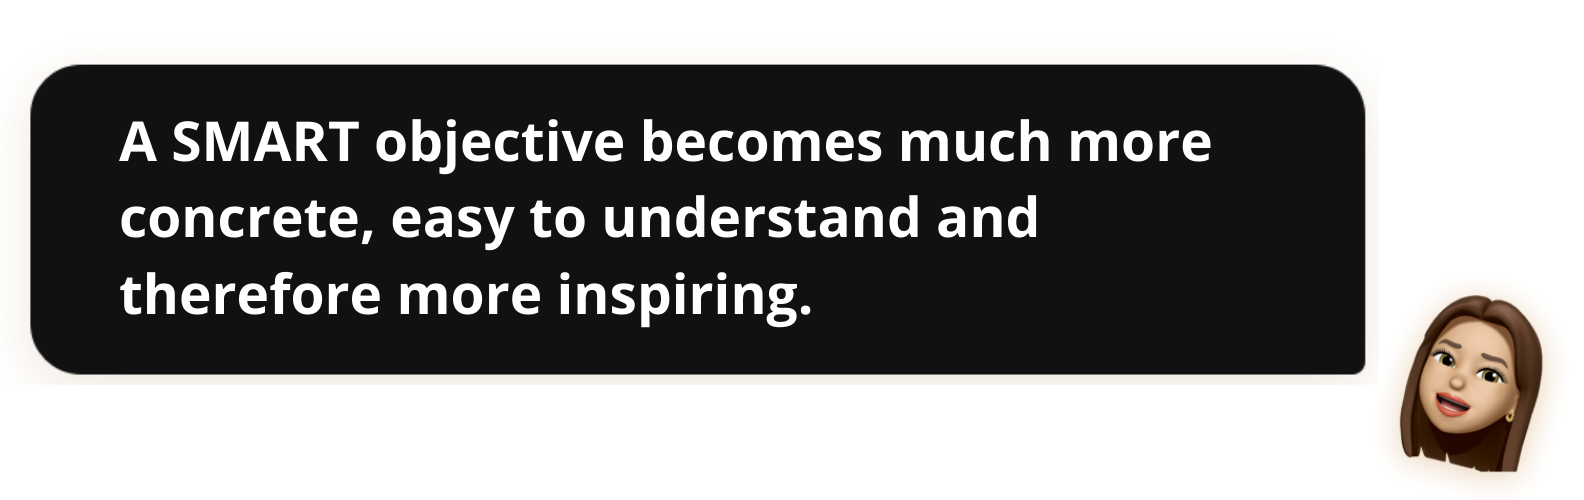 A SMART objective becomes much more concrete, easy to understand and therefore more inspiring